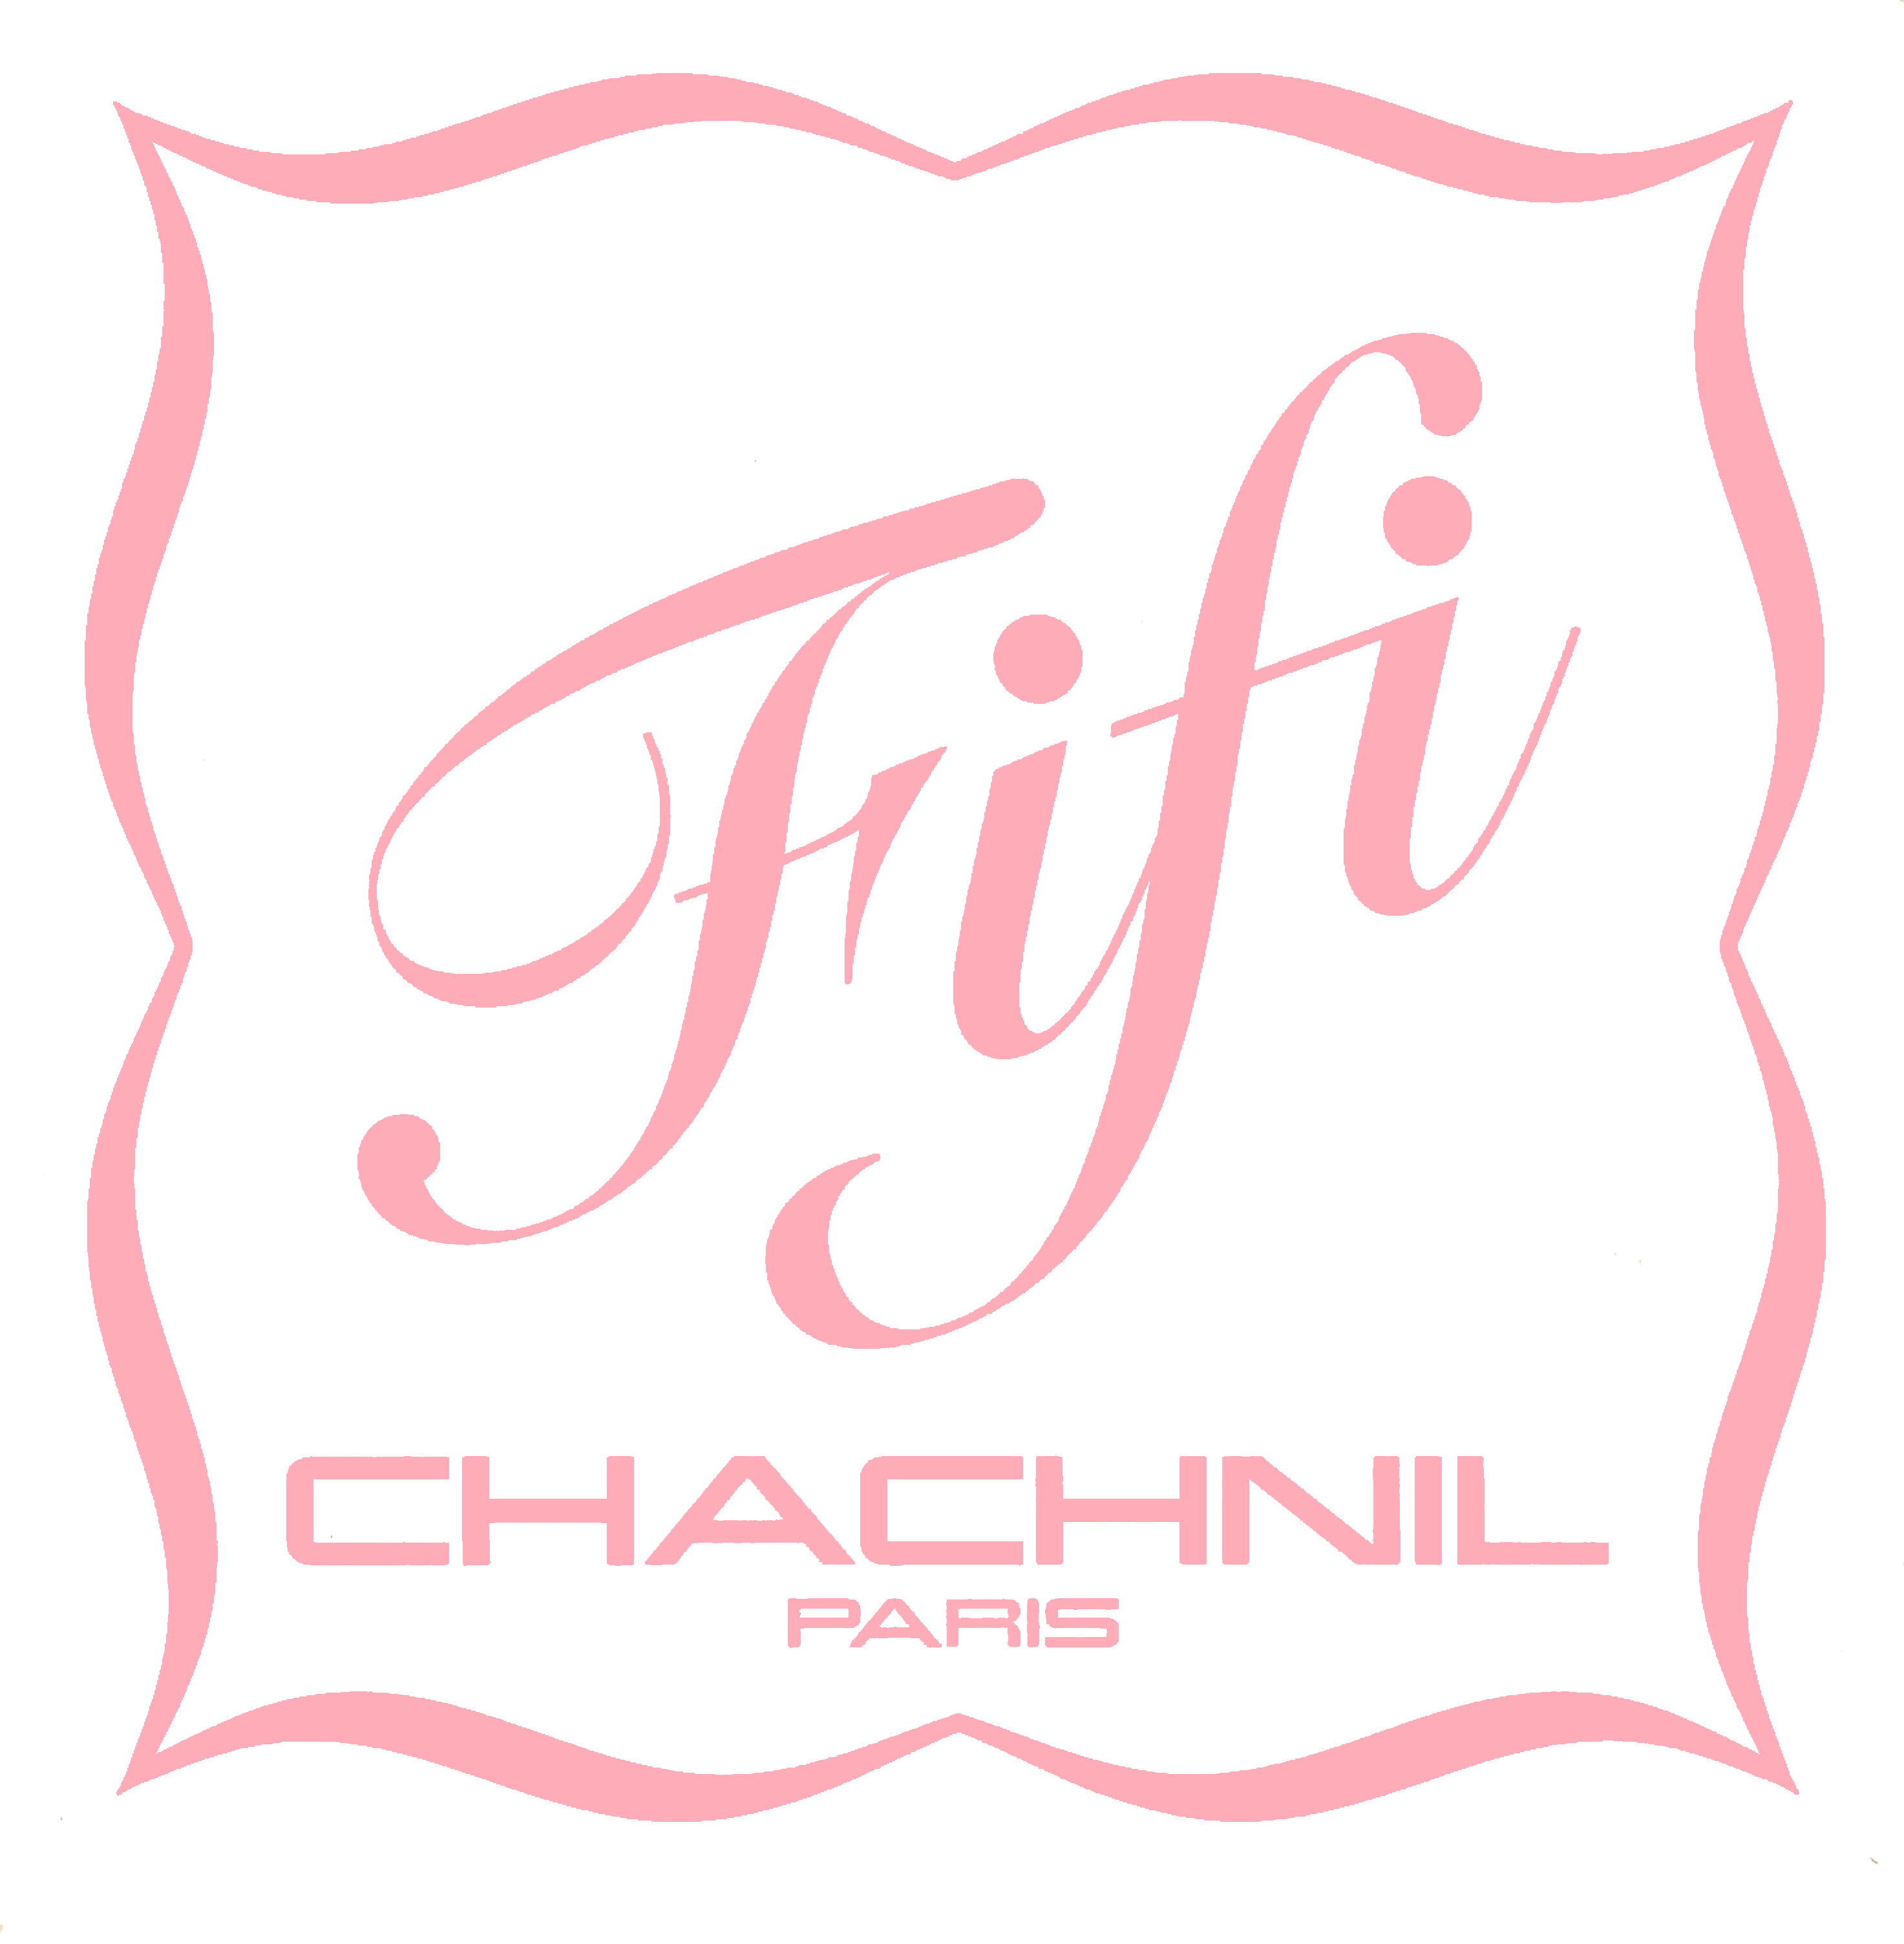 Fifi Chachnil - Official website